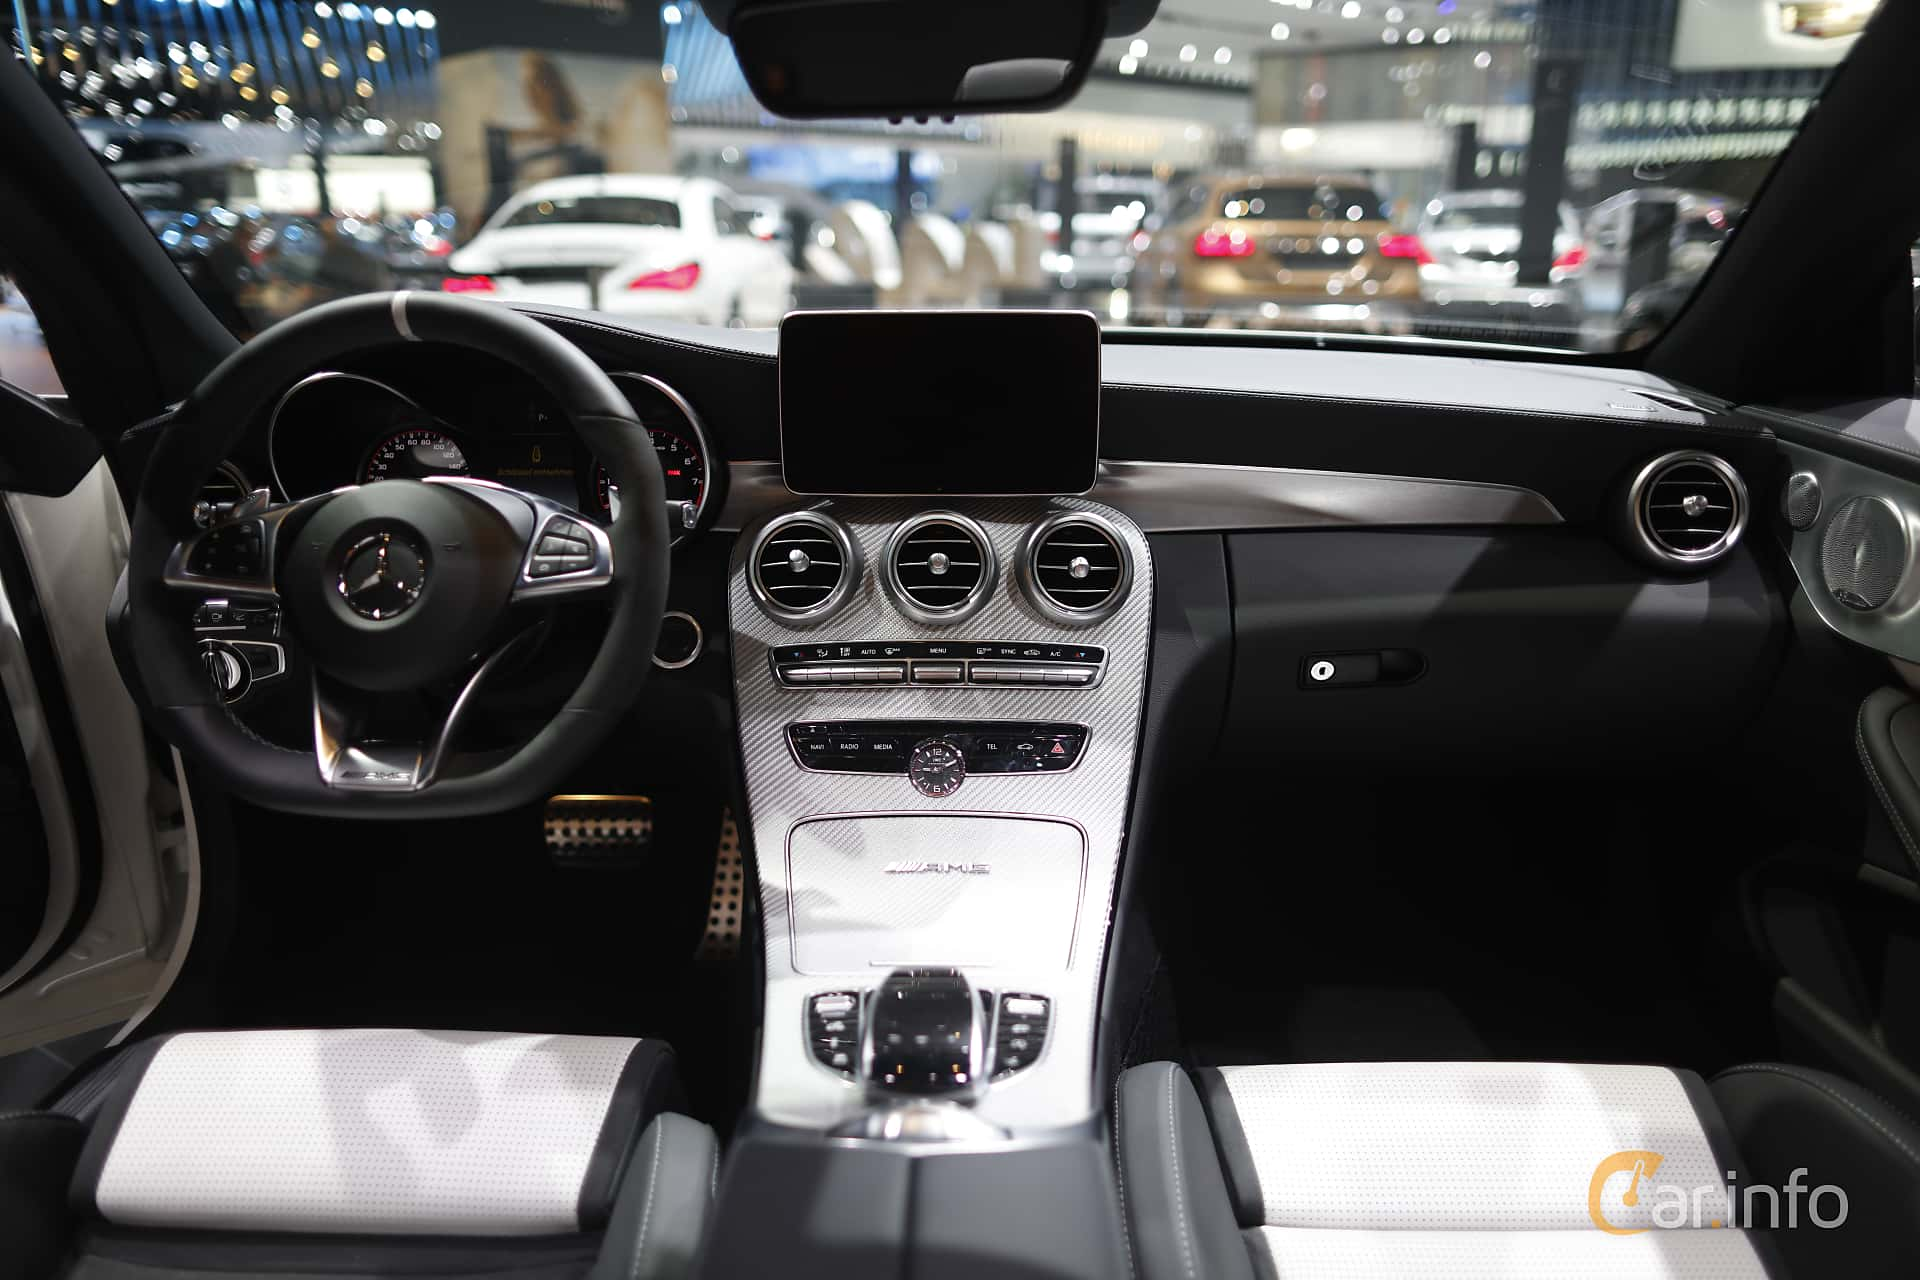 Mercedes-Benz AMG C 63 S Cabriolet 4.0 V8 AMG Speedshift MCT, 510hk, 2017 at North American International Auto Show 2017